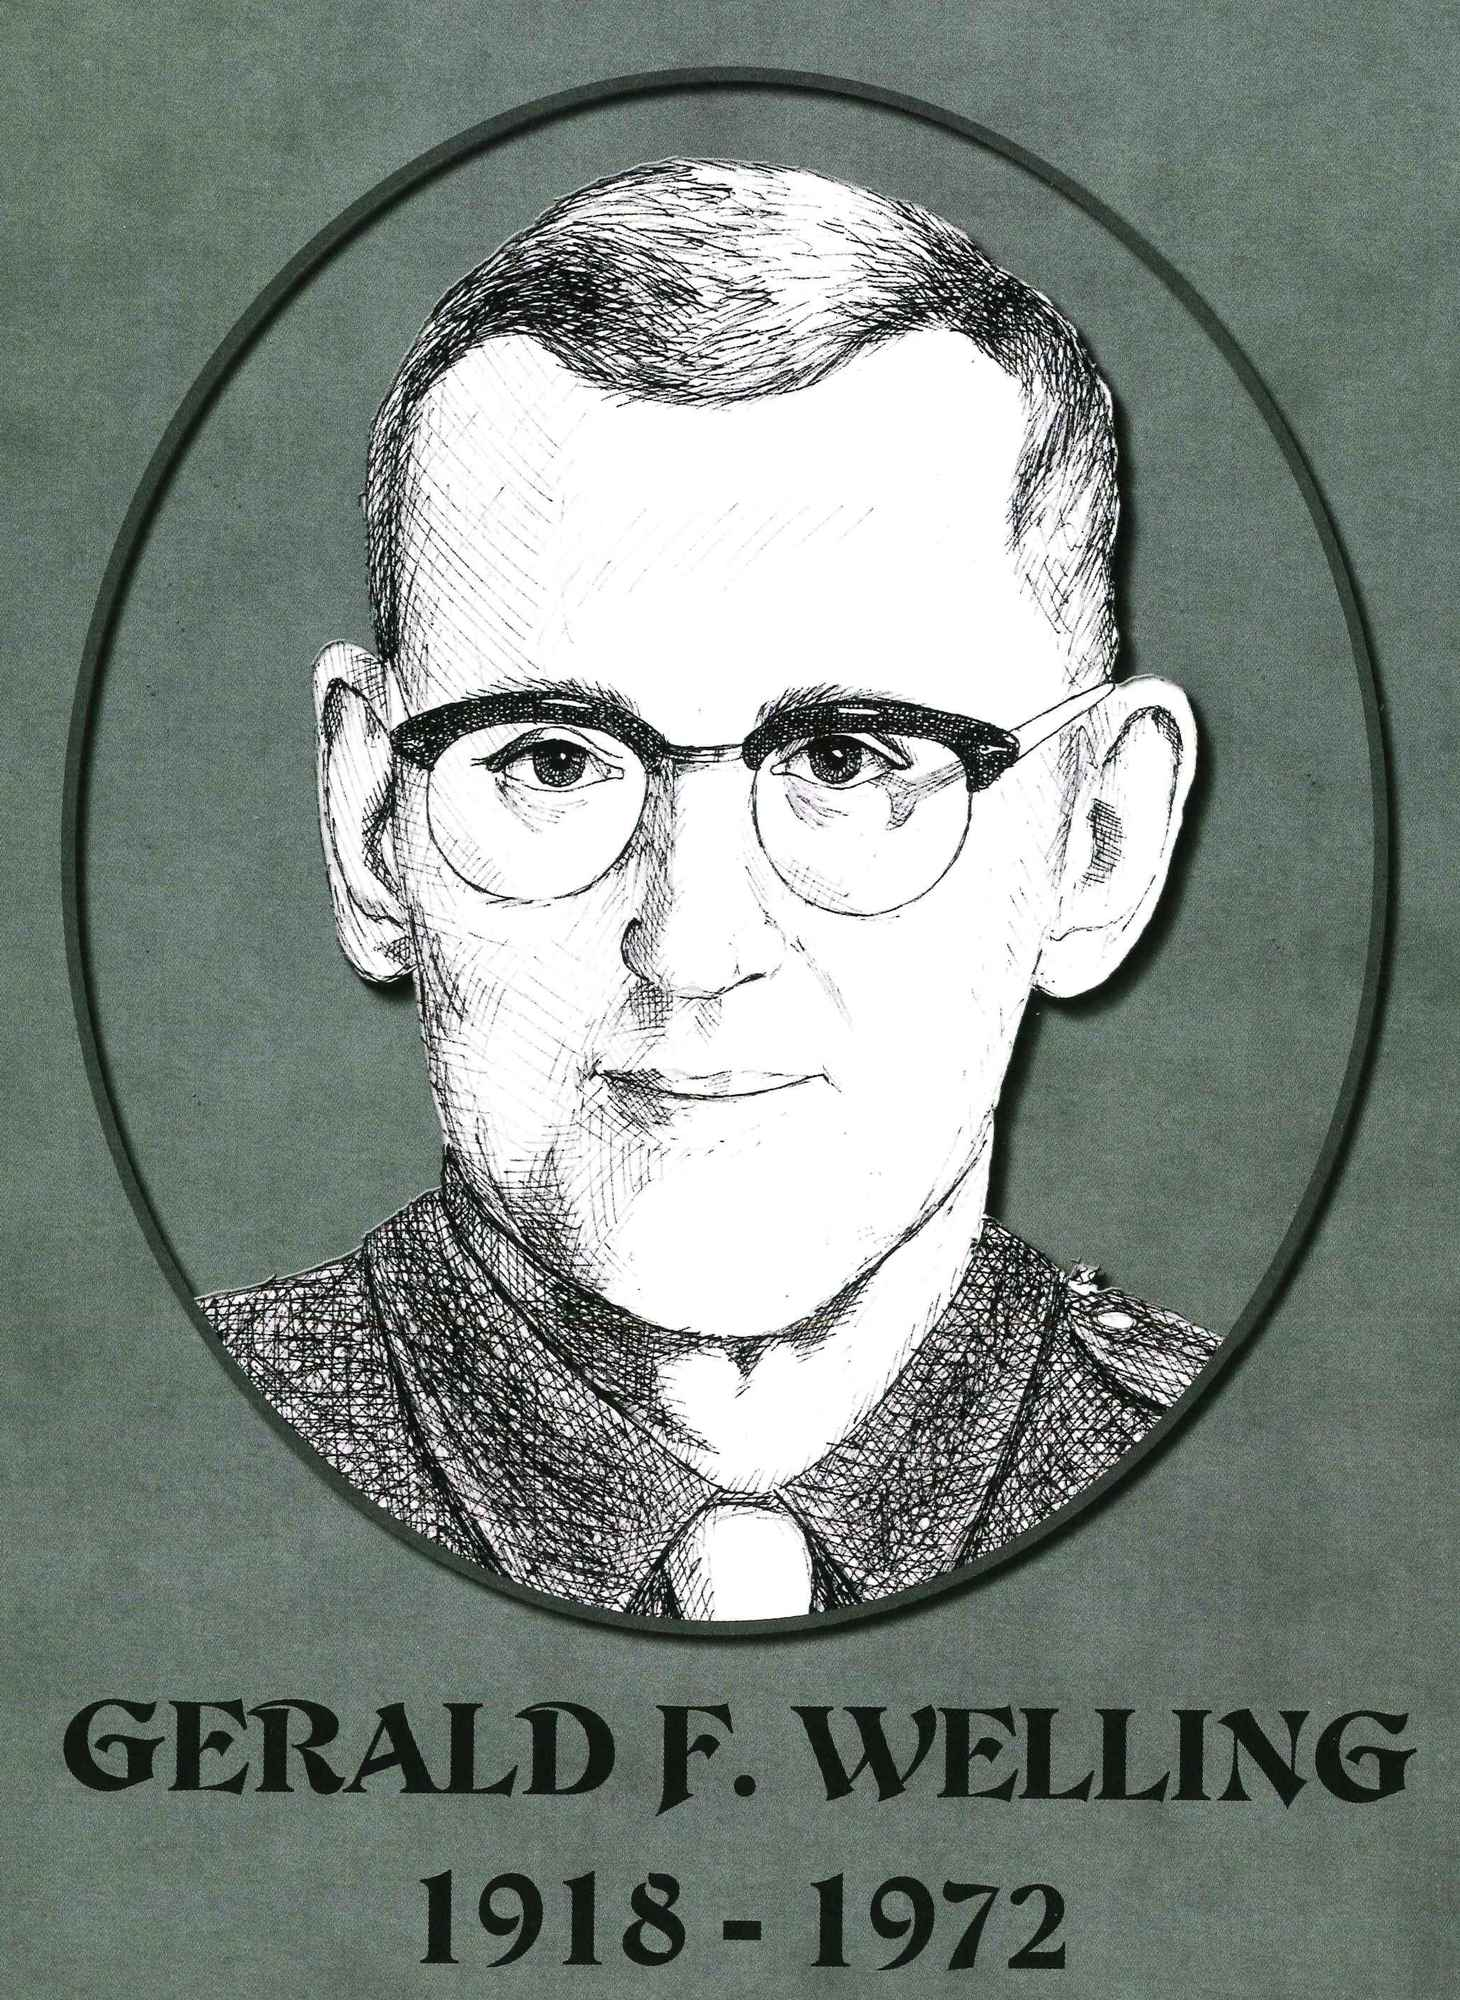 Sketch of Gerald Welling, killed in 1972.